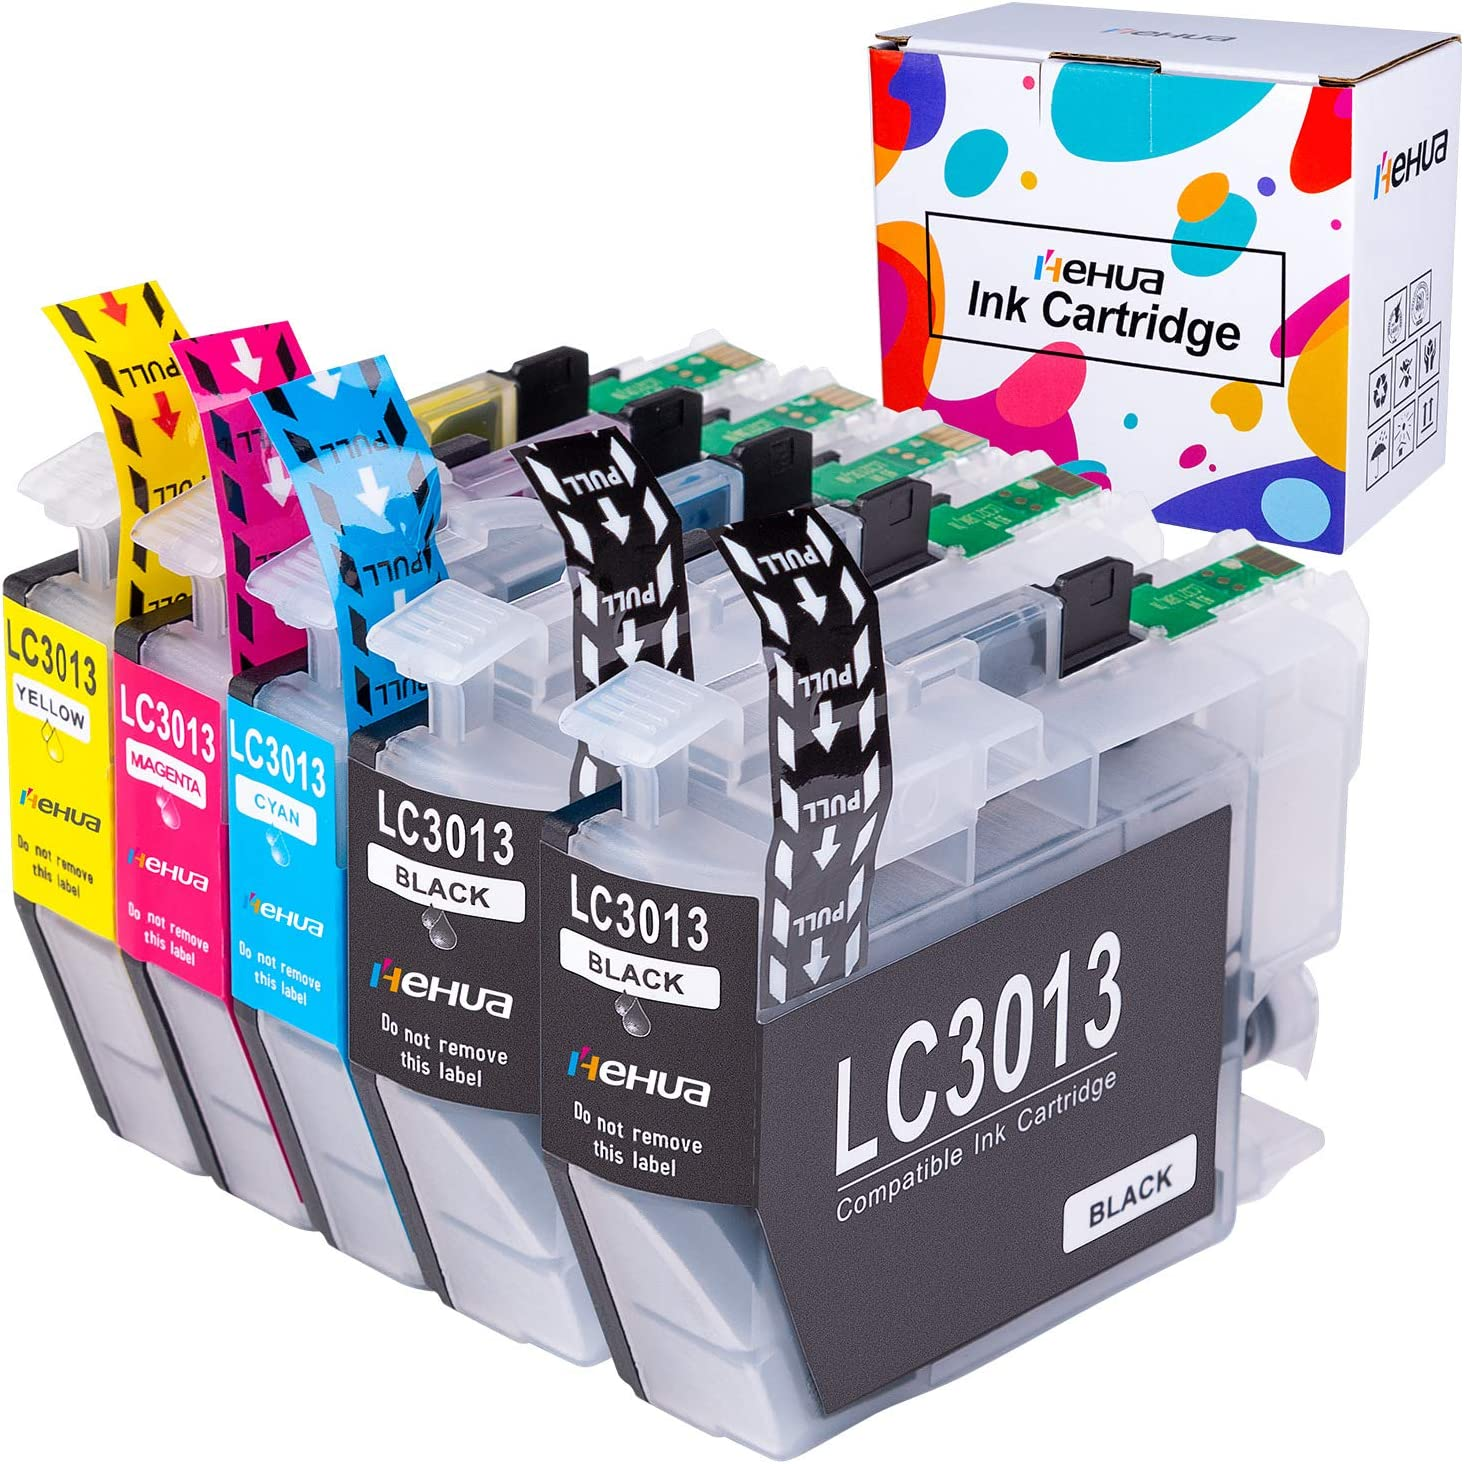 Hehua Compatible Ink Cartridges Replacement for Brother LC3013 LC-3013 XL LC3011 High Yield for Brother MFC-J895DW MFC-J690DW MFC-J491DW MFC-J497DW (2Black, Cyan, Yellow, Magenta, 5 Packs)